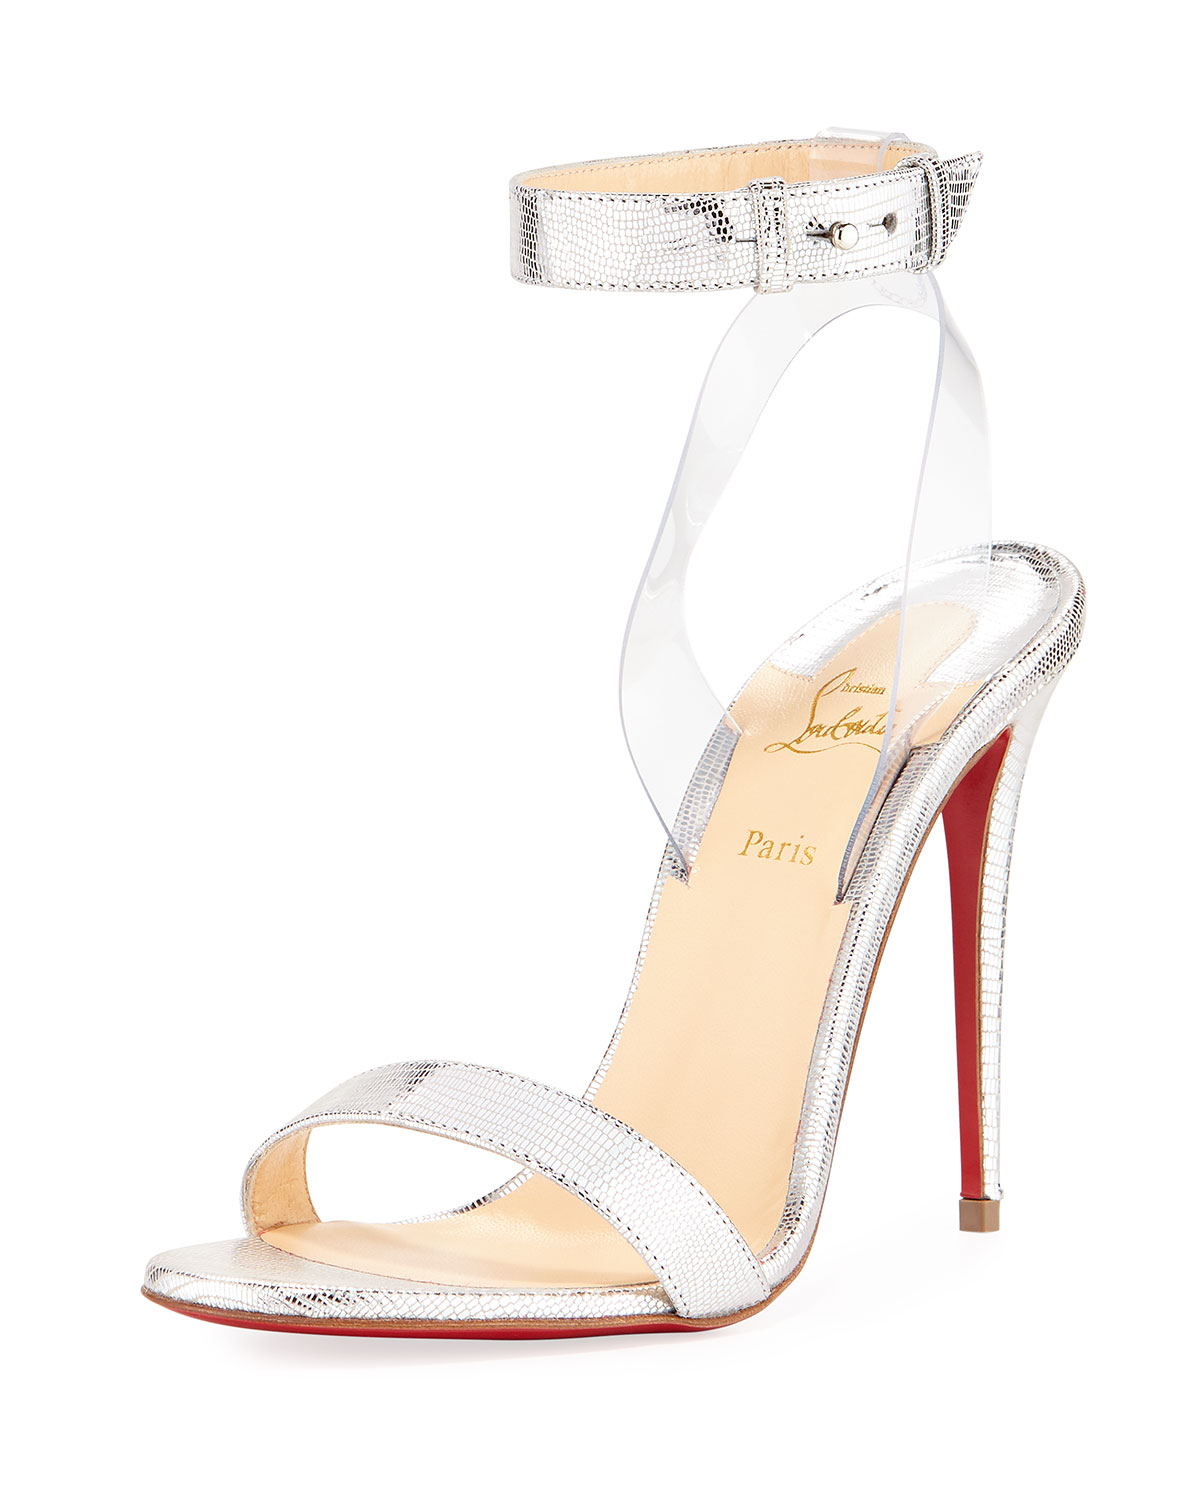 0605a6e30d1f Christian Louboutin Jonatina Embossed Red Sole Sandal